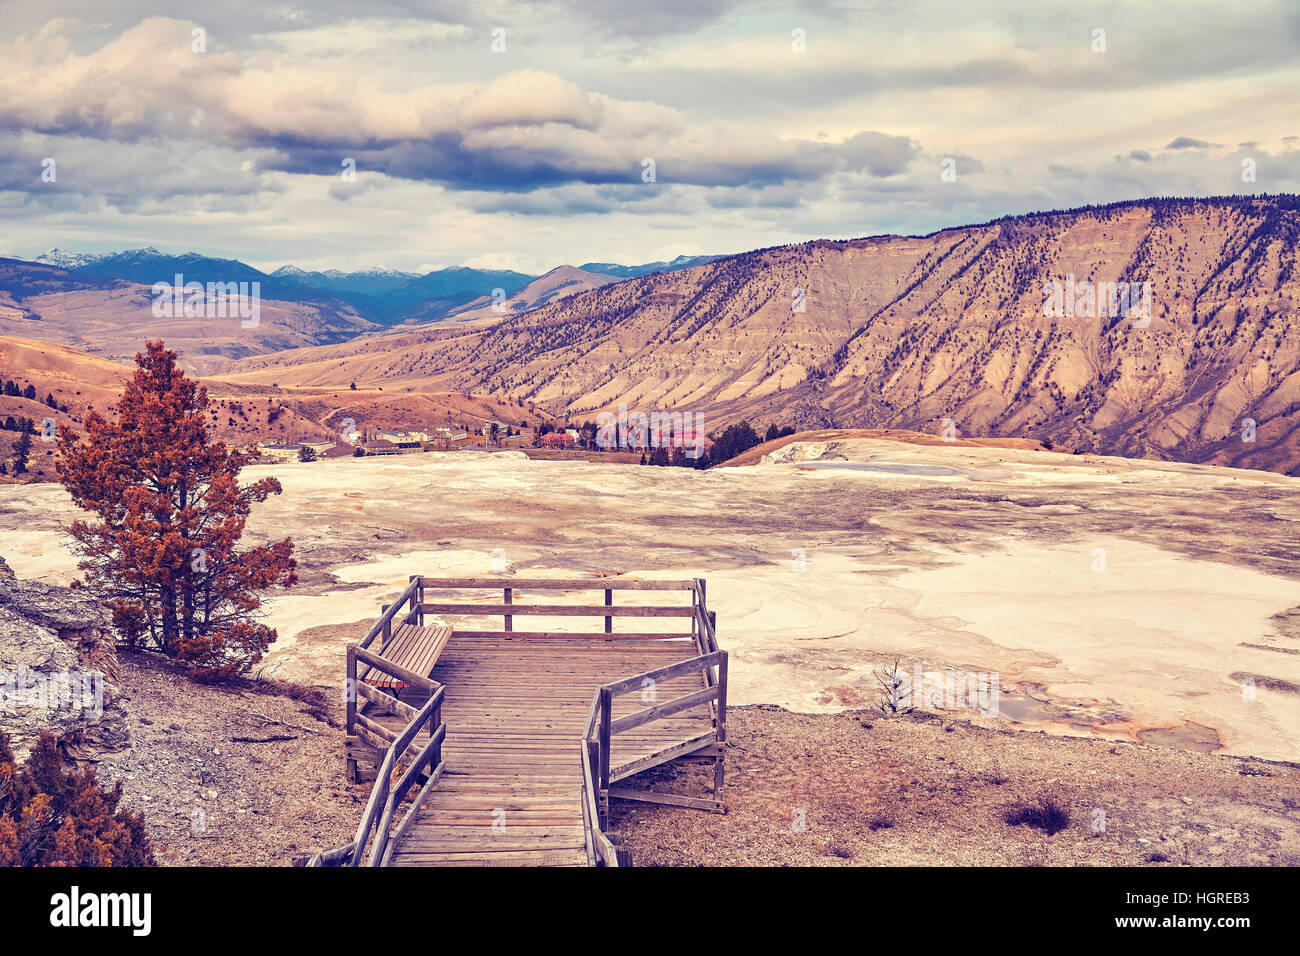 Tons couleur hot springs dans le Yellowstone National Park, Wyoming, USA. Photo Stock